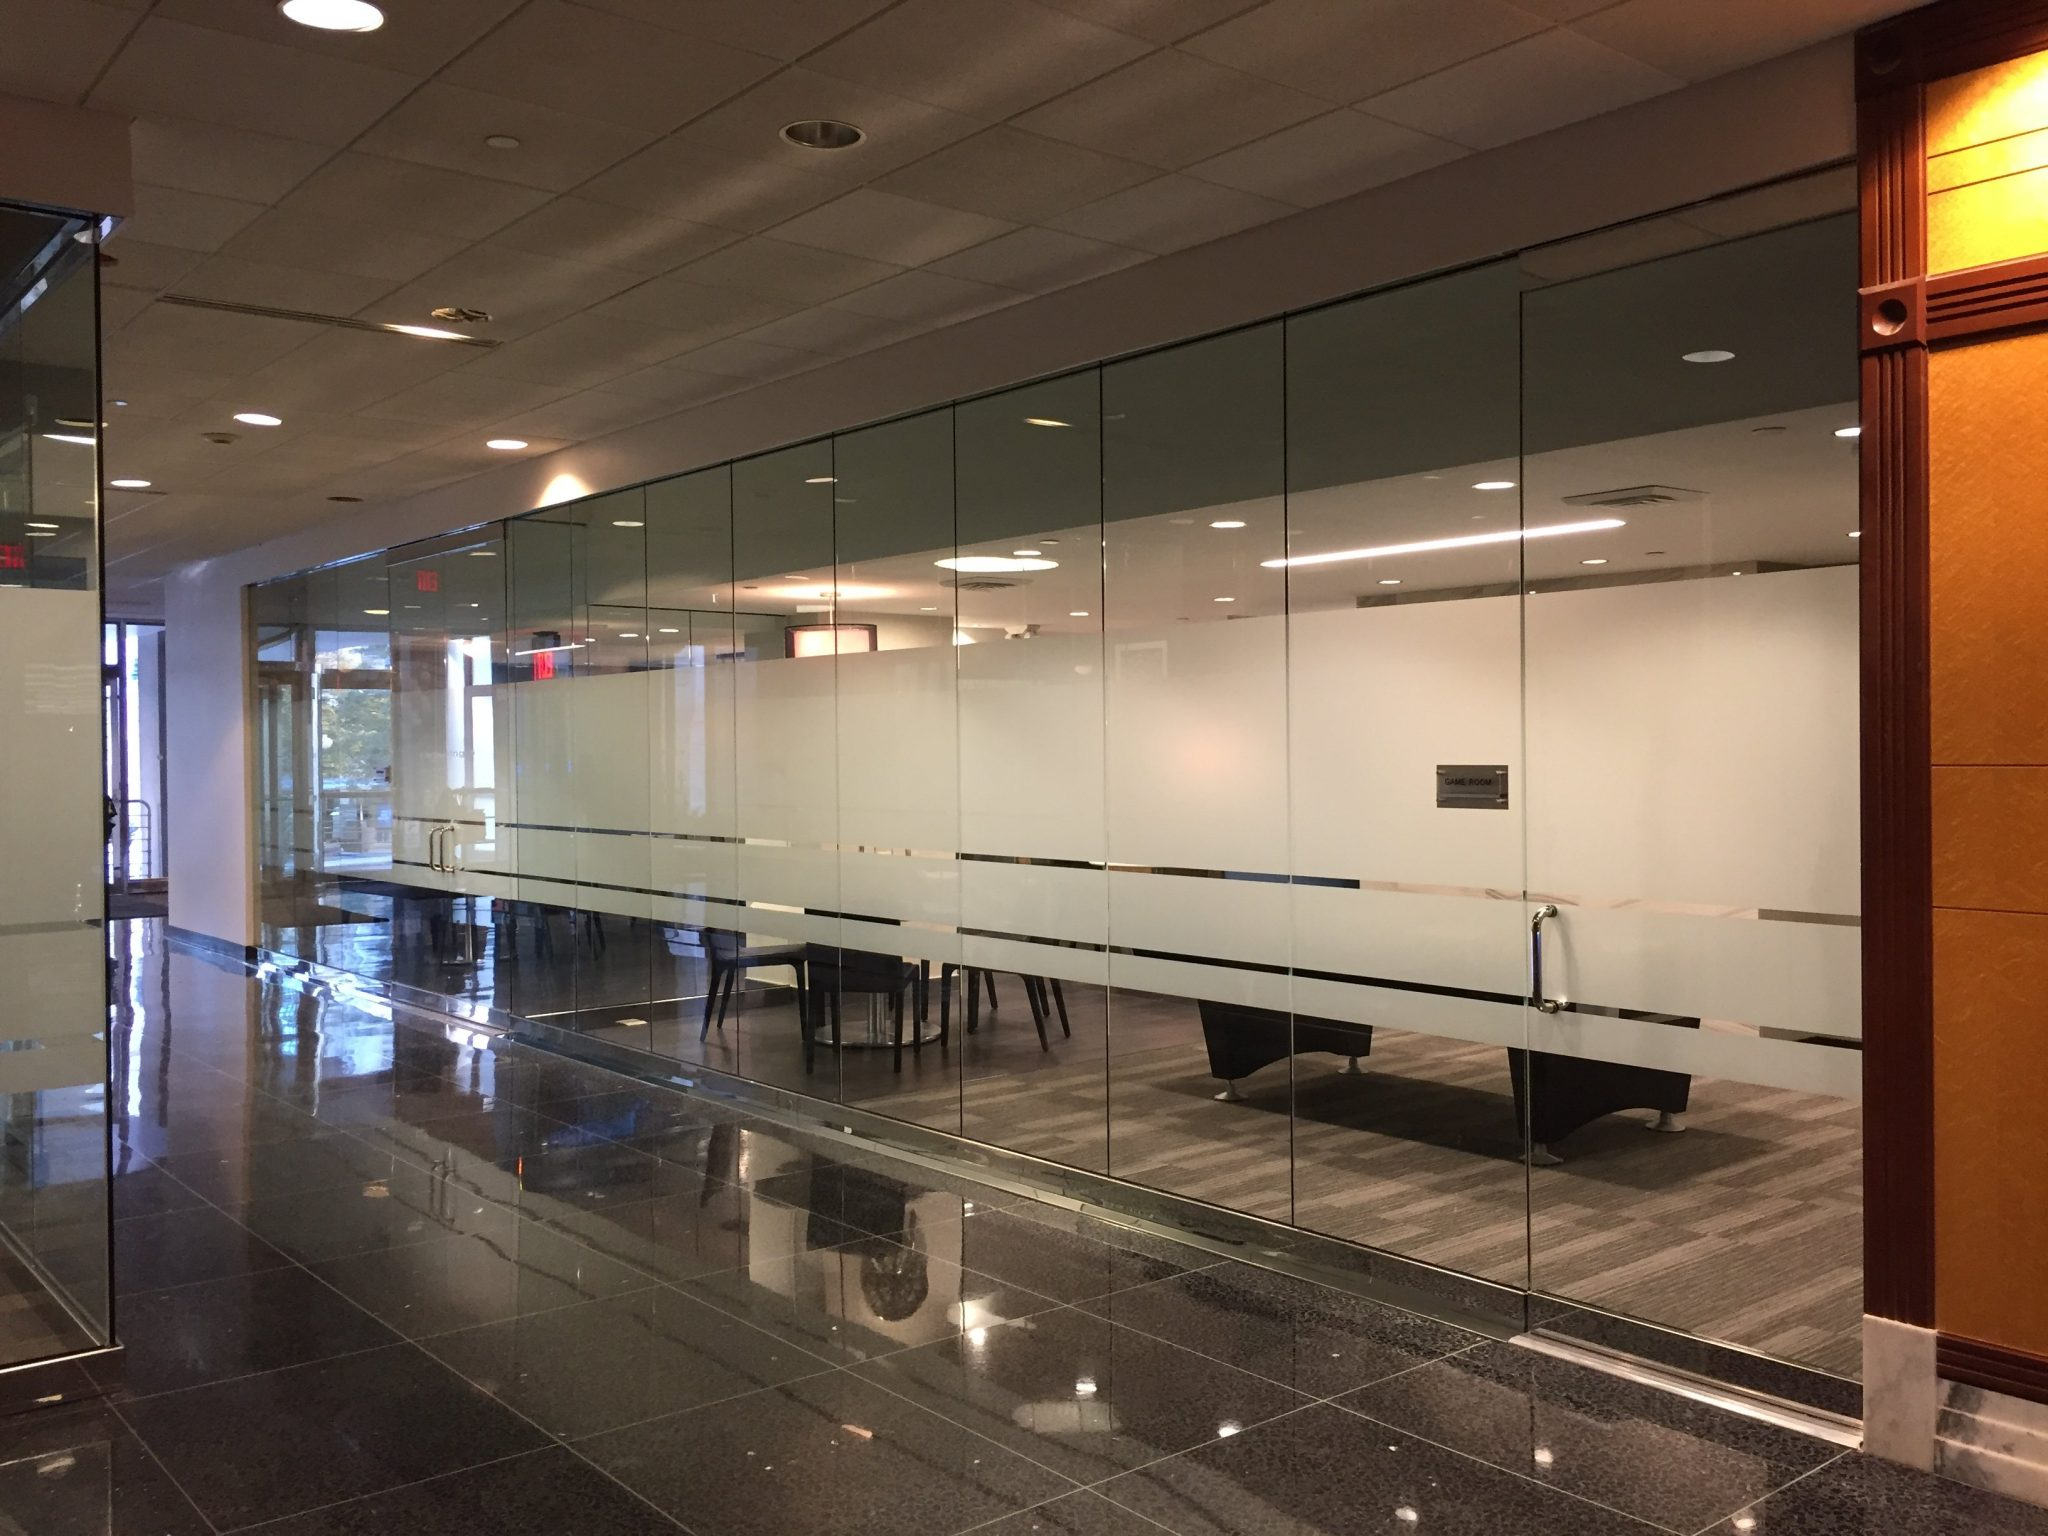 Seven Reasons to Consider Commercial Decorative Glass Film in Kansas City 3 - Decorative Window Film Kansas City